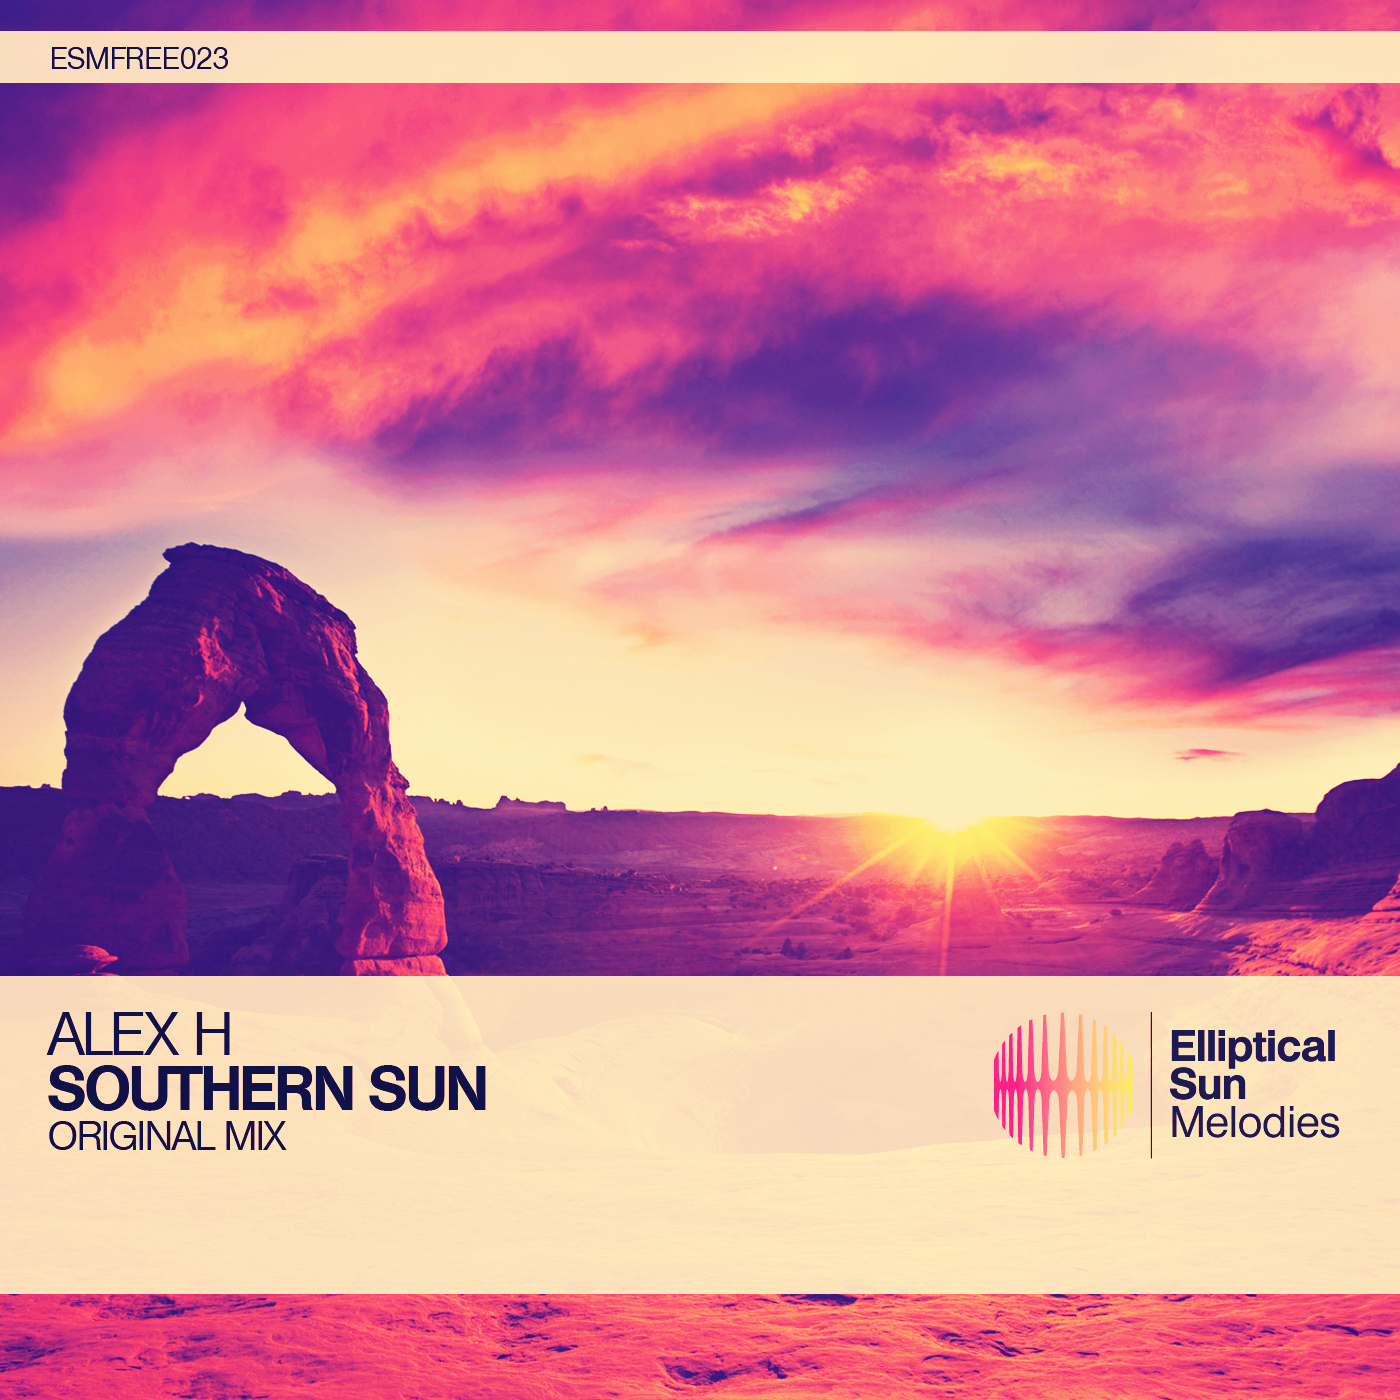 Alex H - Southern Sun (Original Mix)